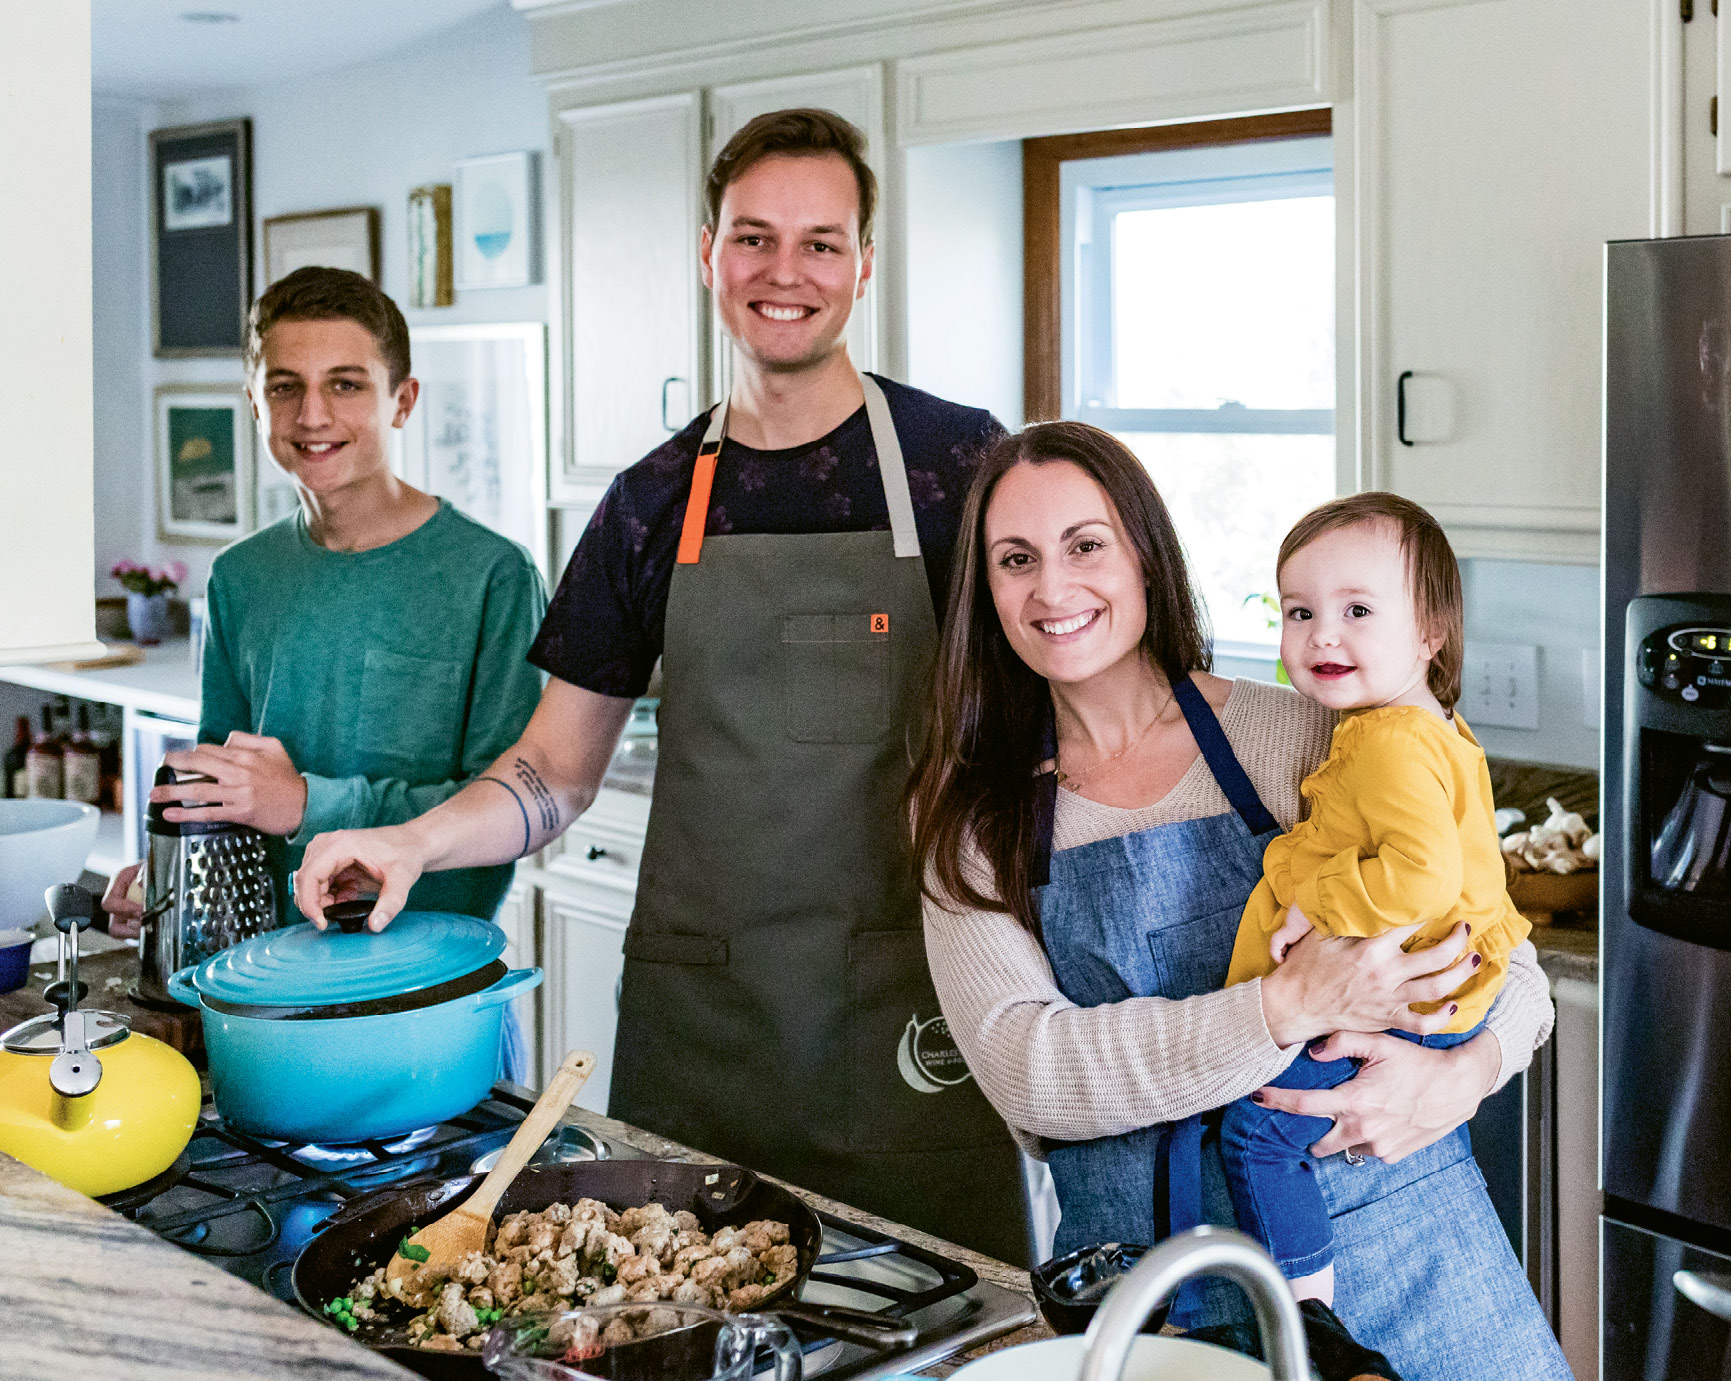 With both a teen and a tot to feed, Gillian and Spencer Zettler lean on family recipes that have proven simple yet delicious for generations.